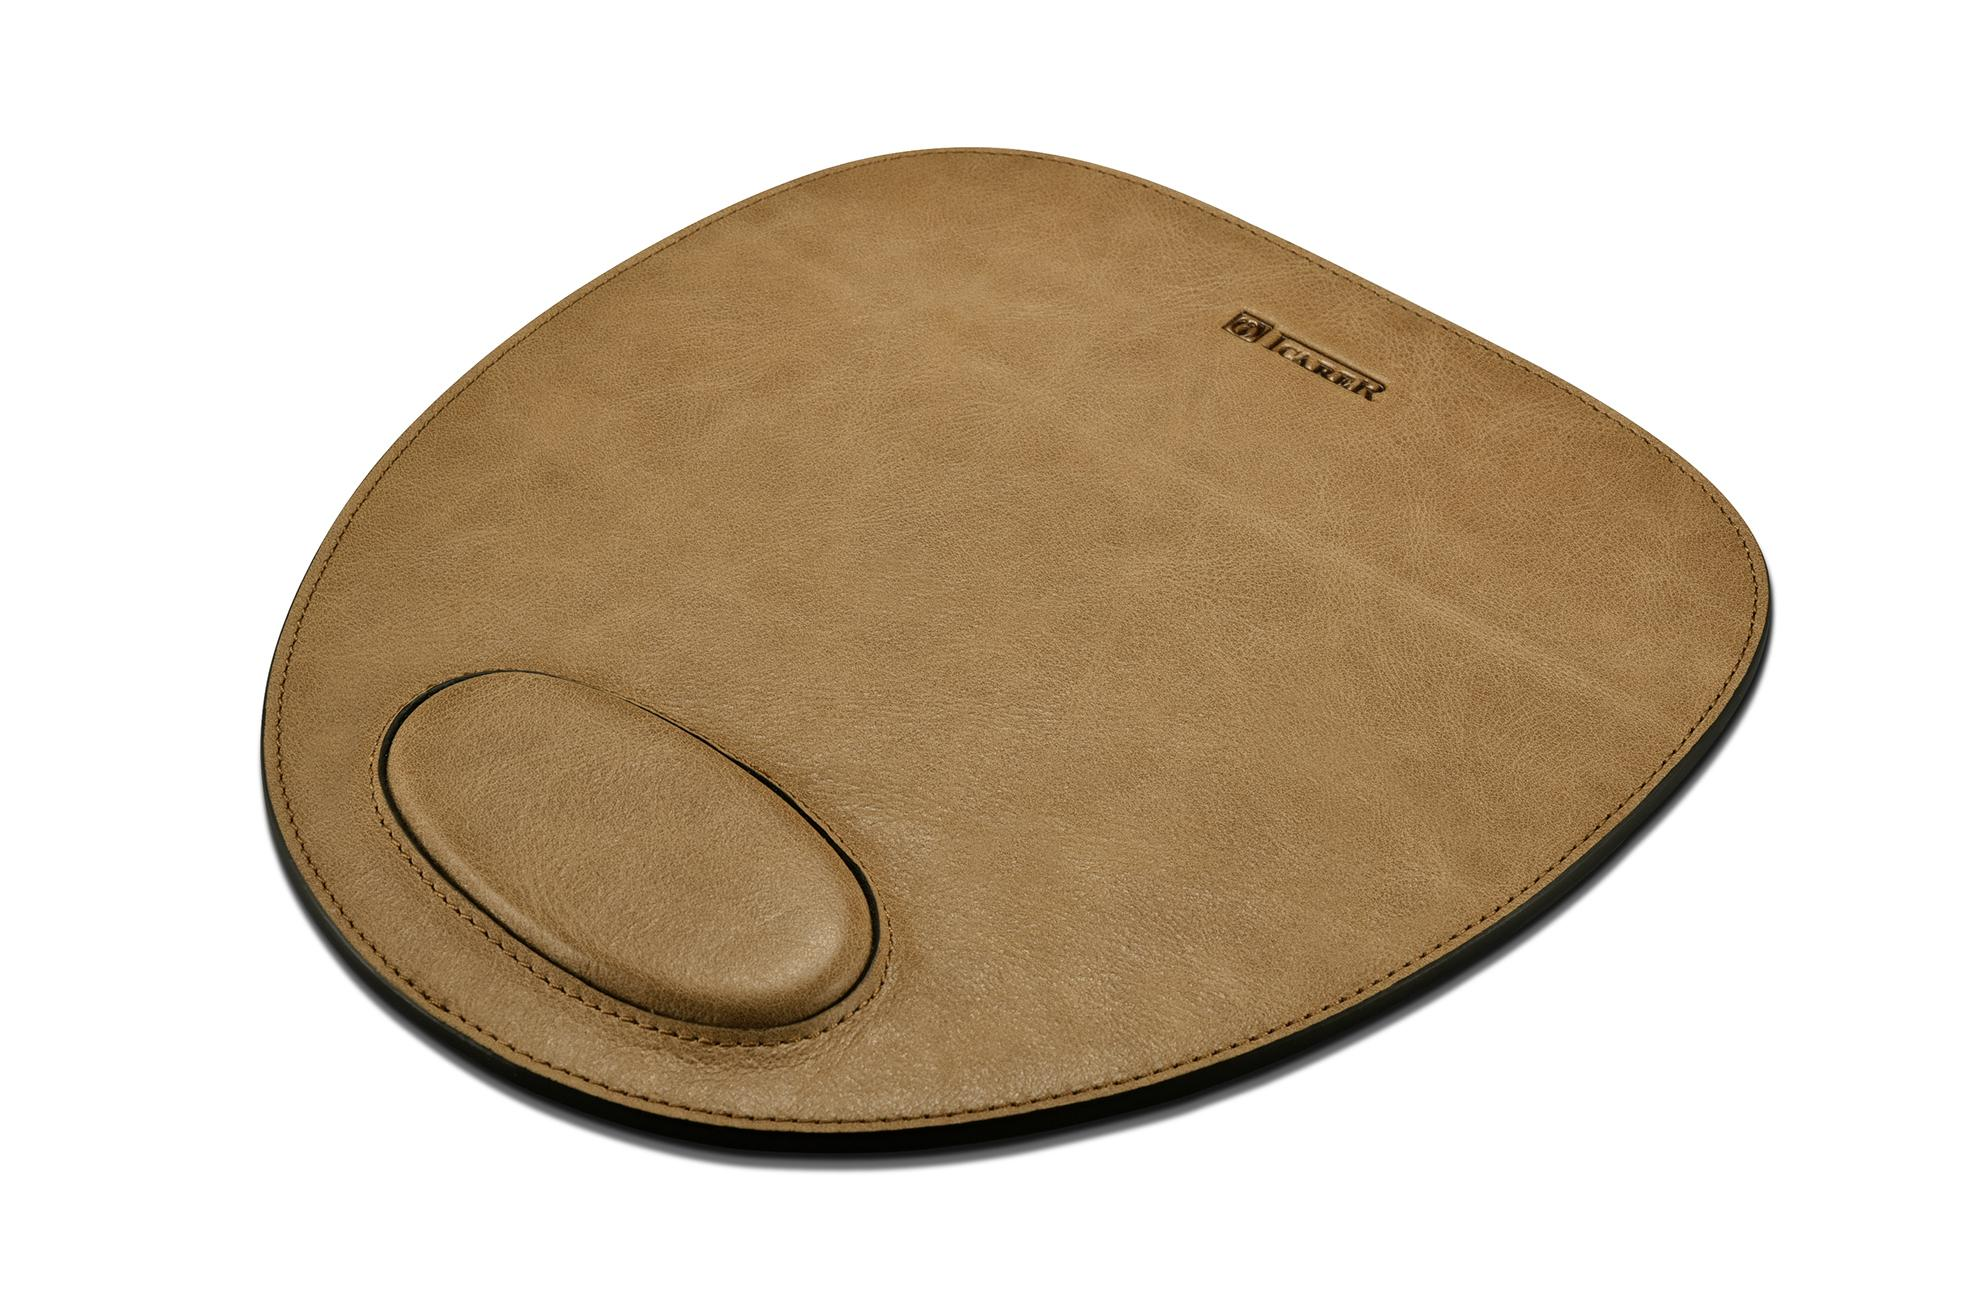 iCarer Shenzhou Real Leather Mouse Pad 4